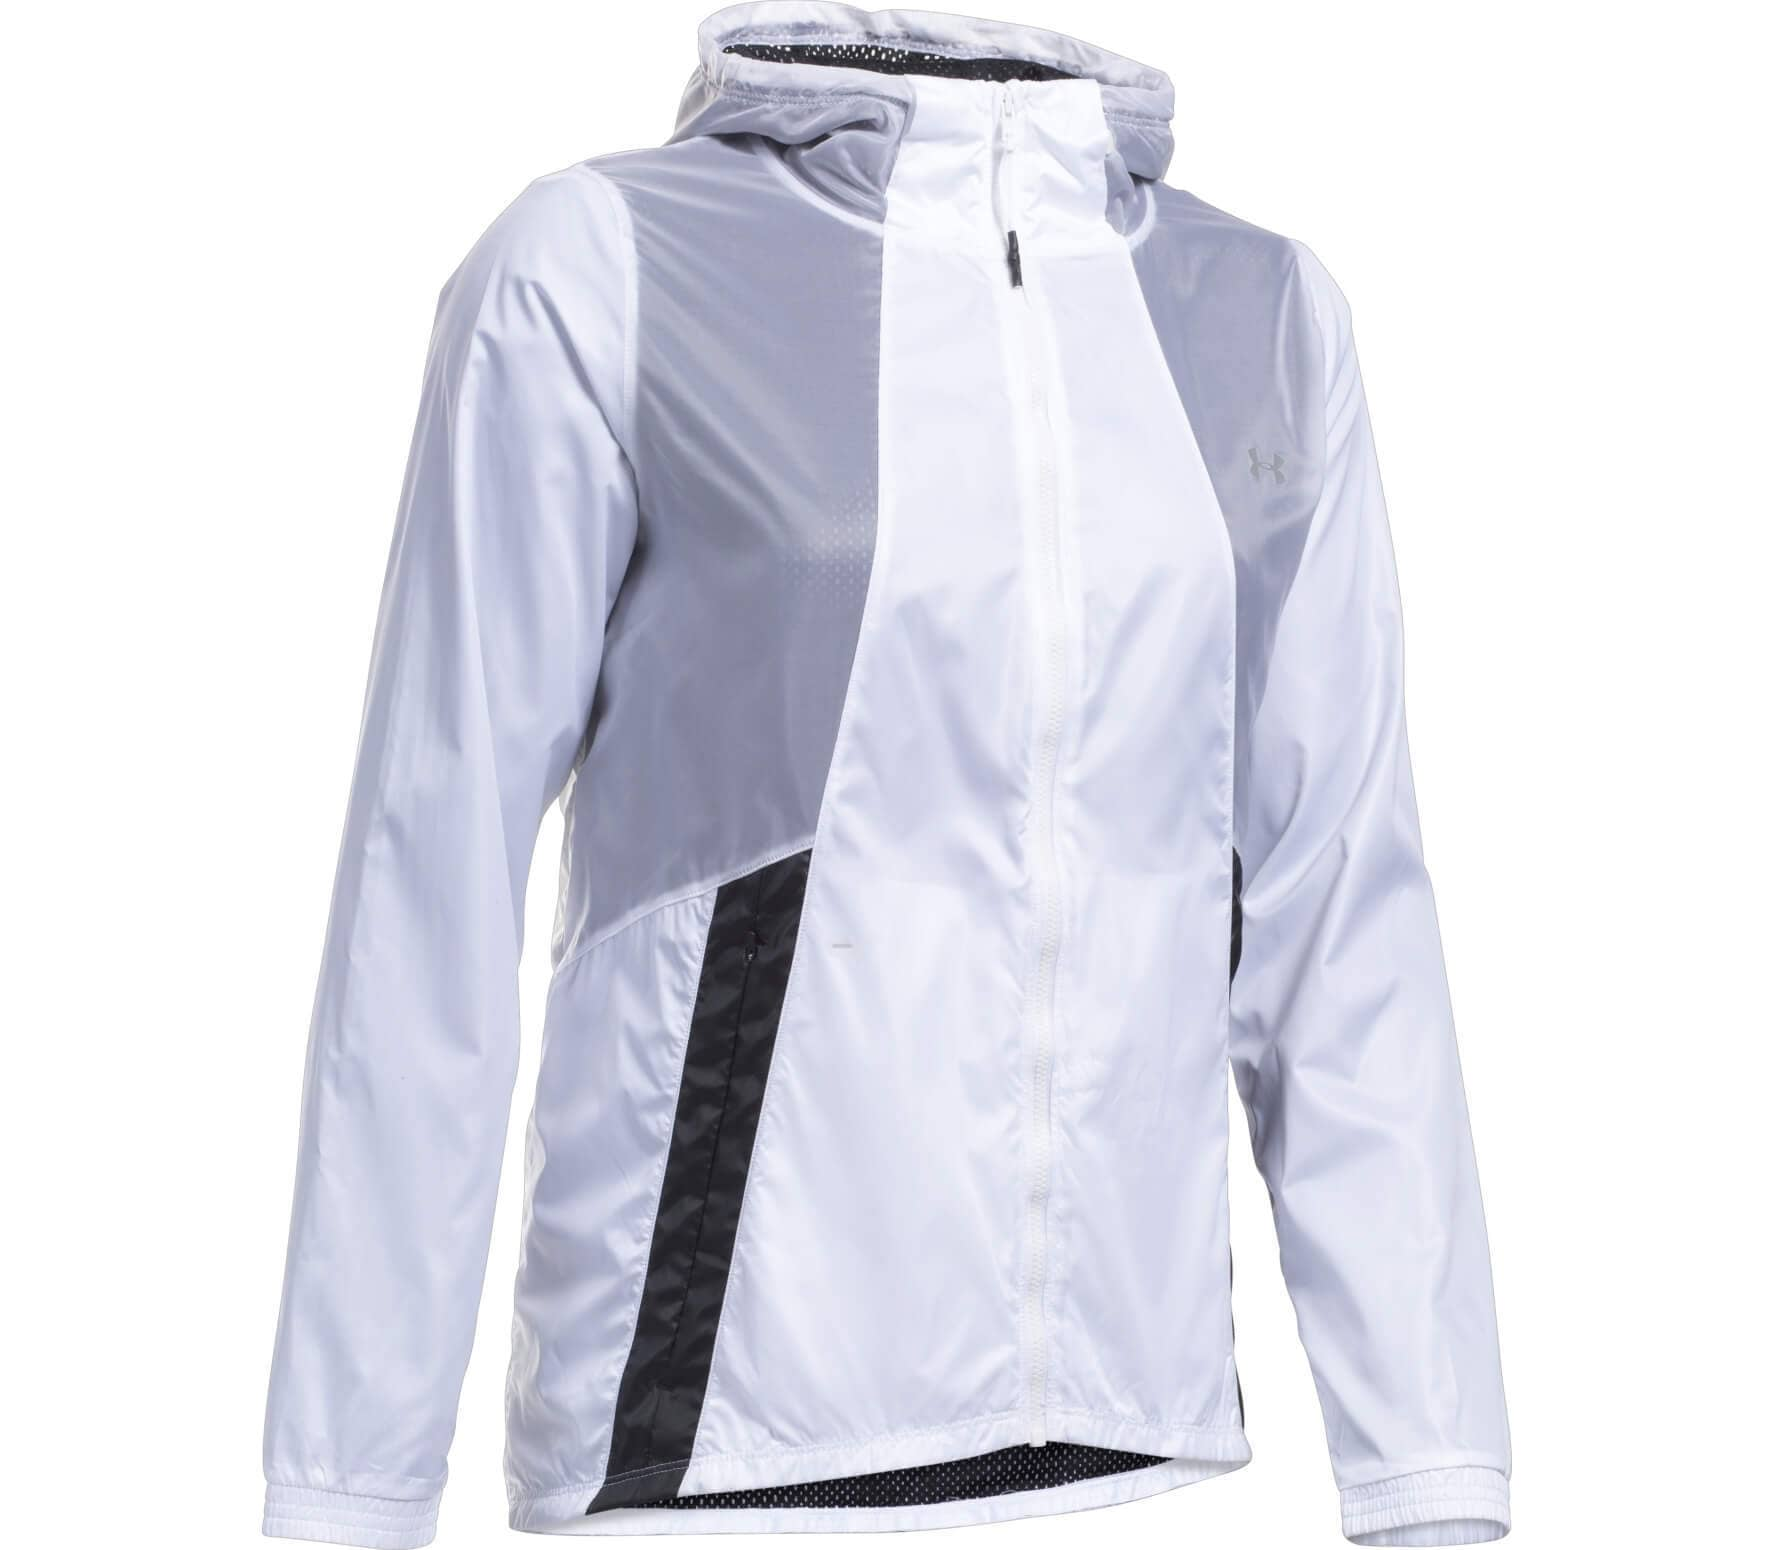 Under Armour - True women's running jacket (white) - XS thumbnail